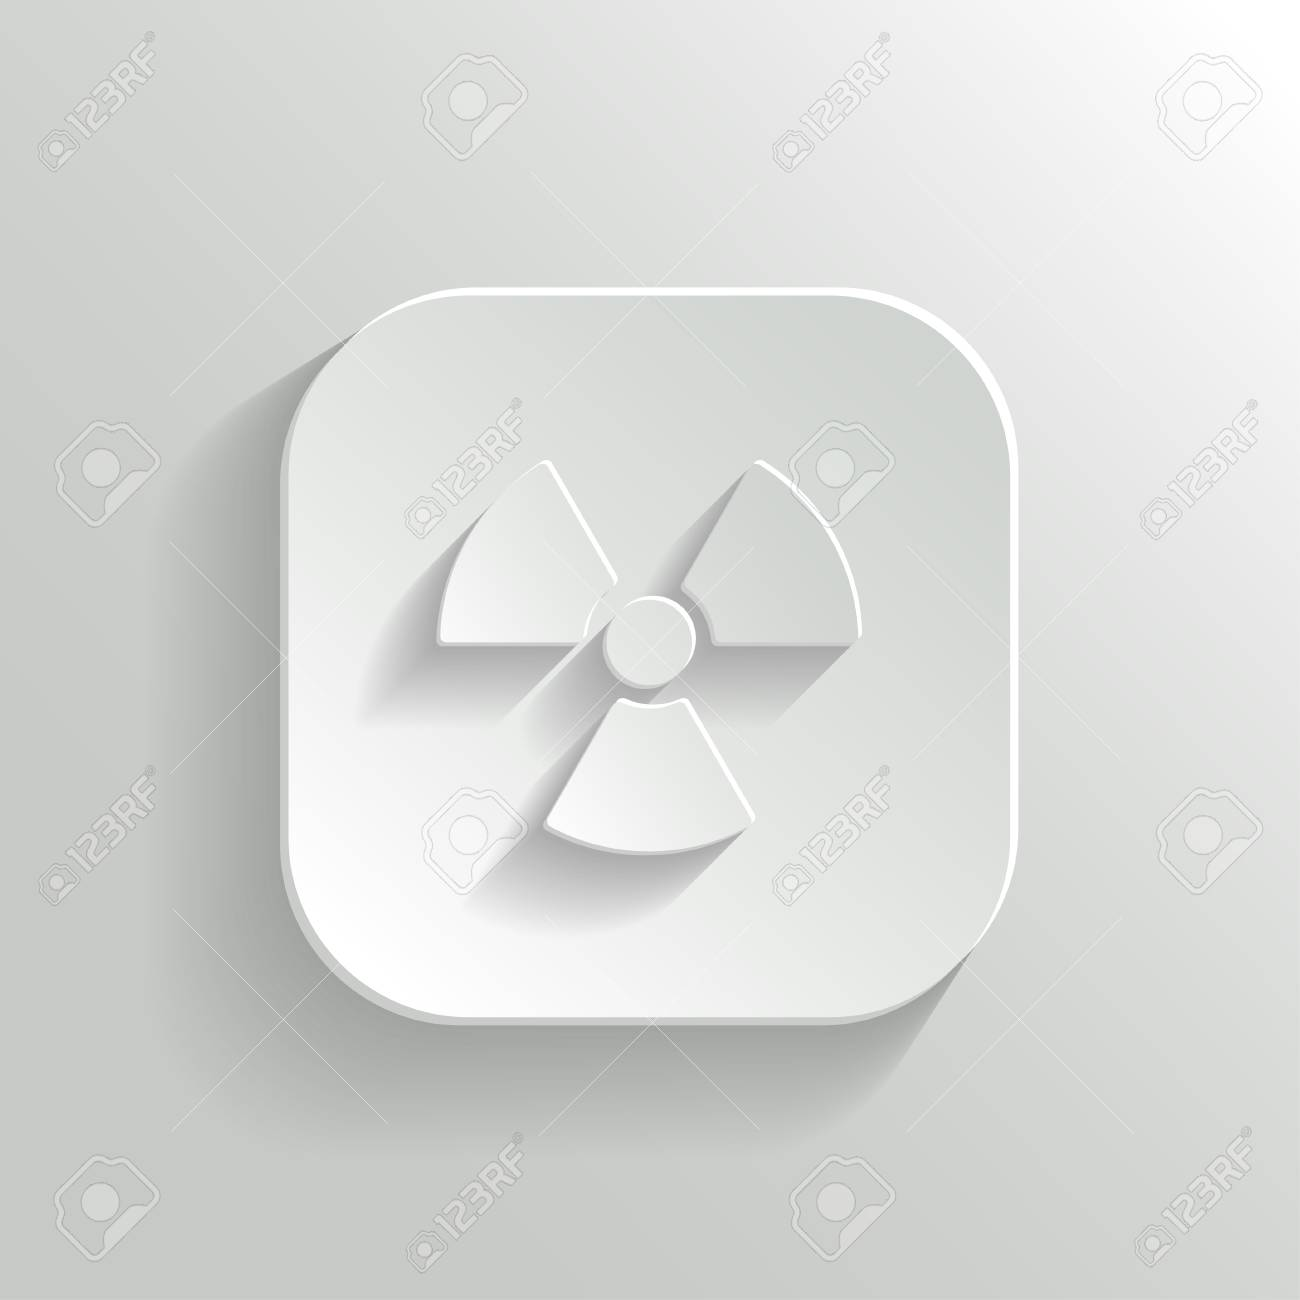 Radioaktivity icon - vector white app button with shadow Stock Vector - 25041227